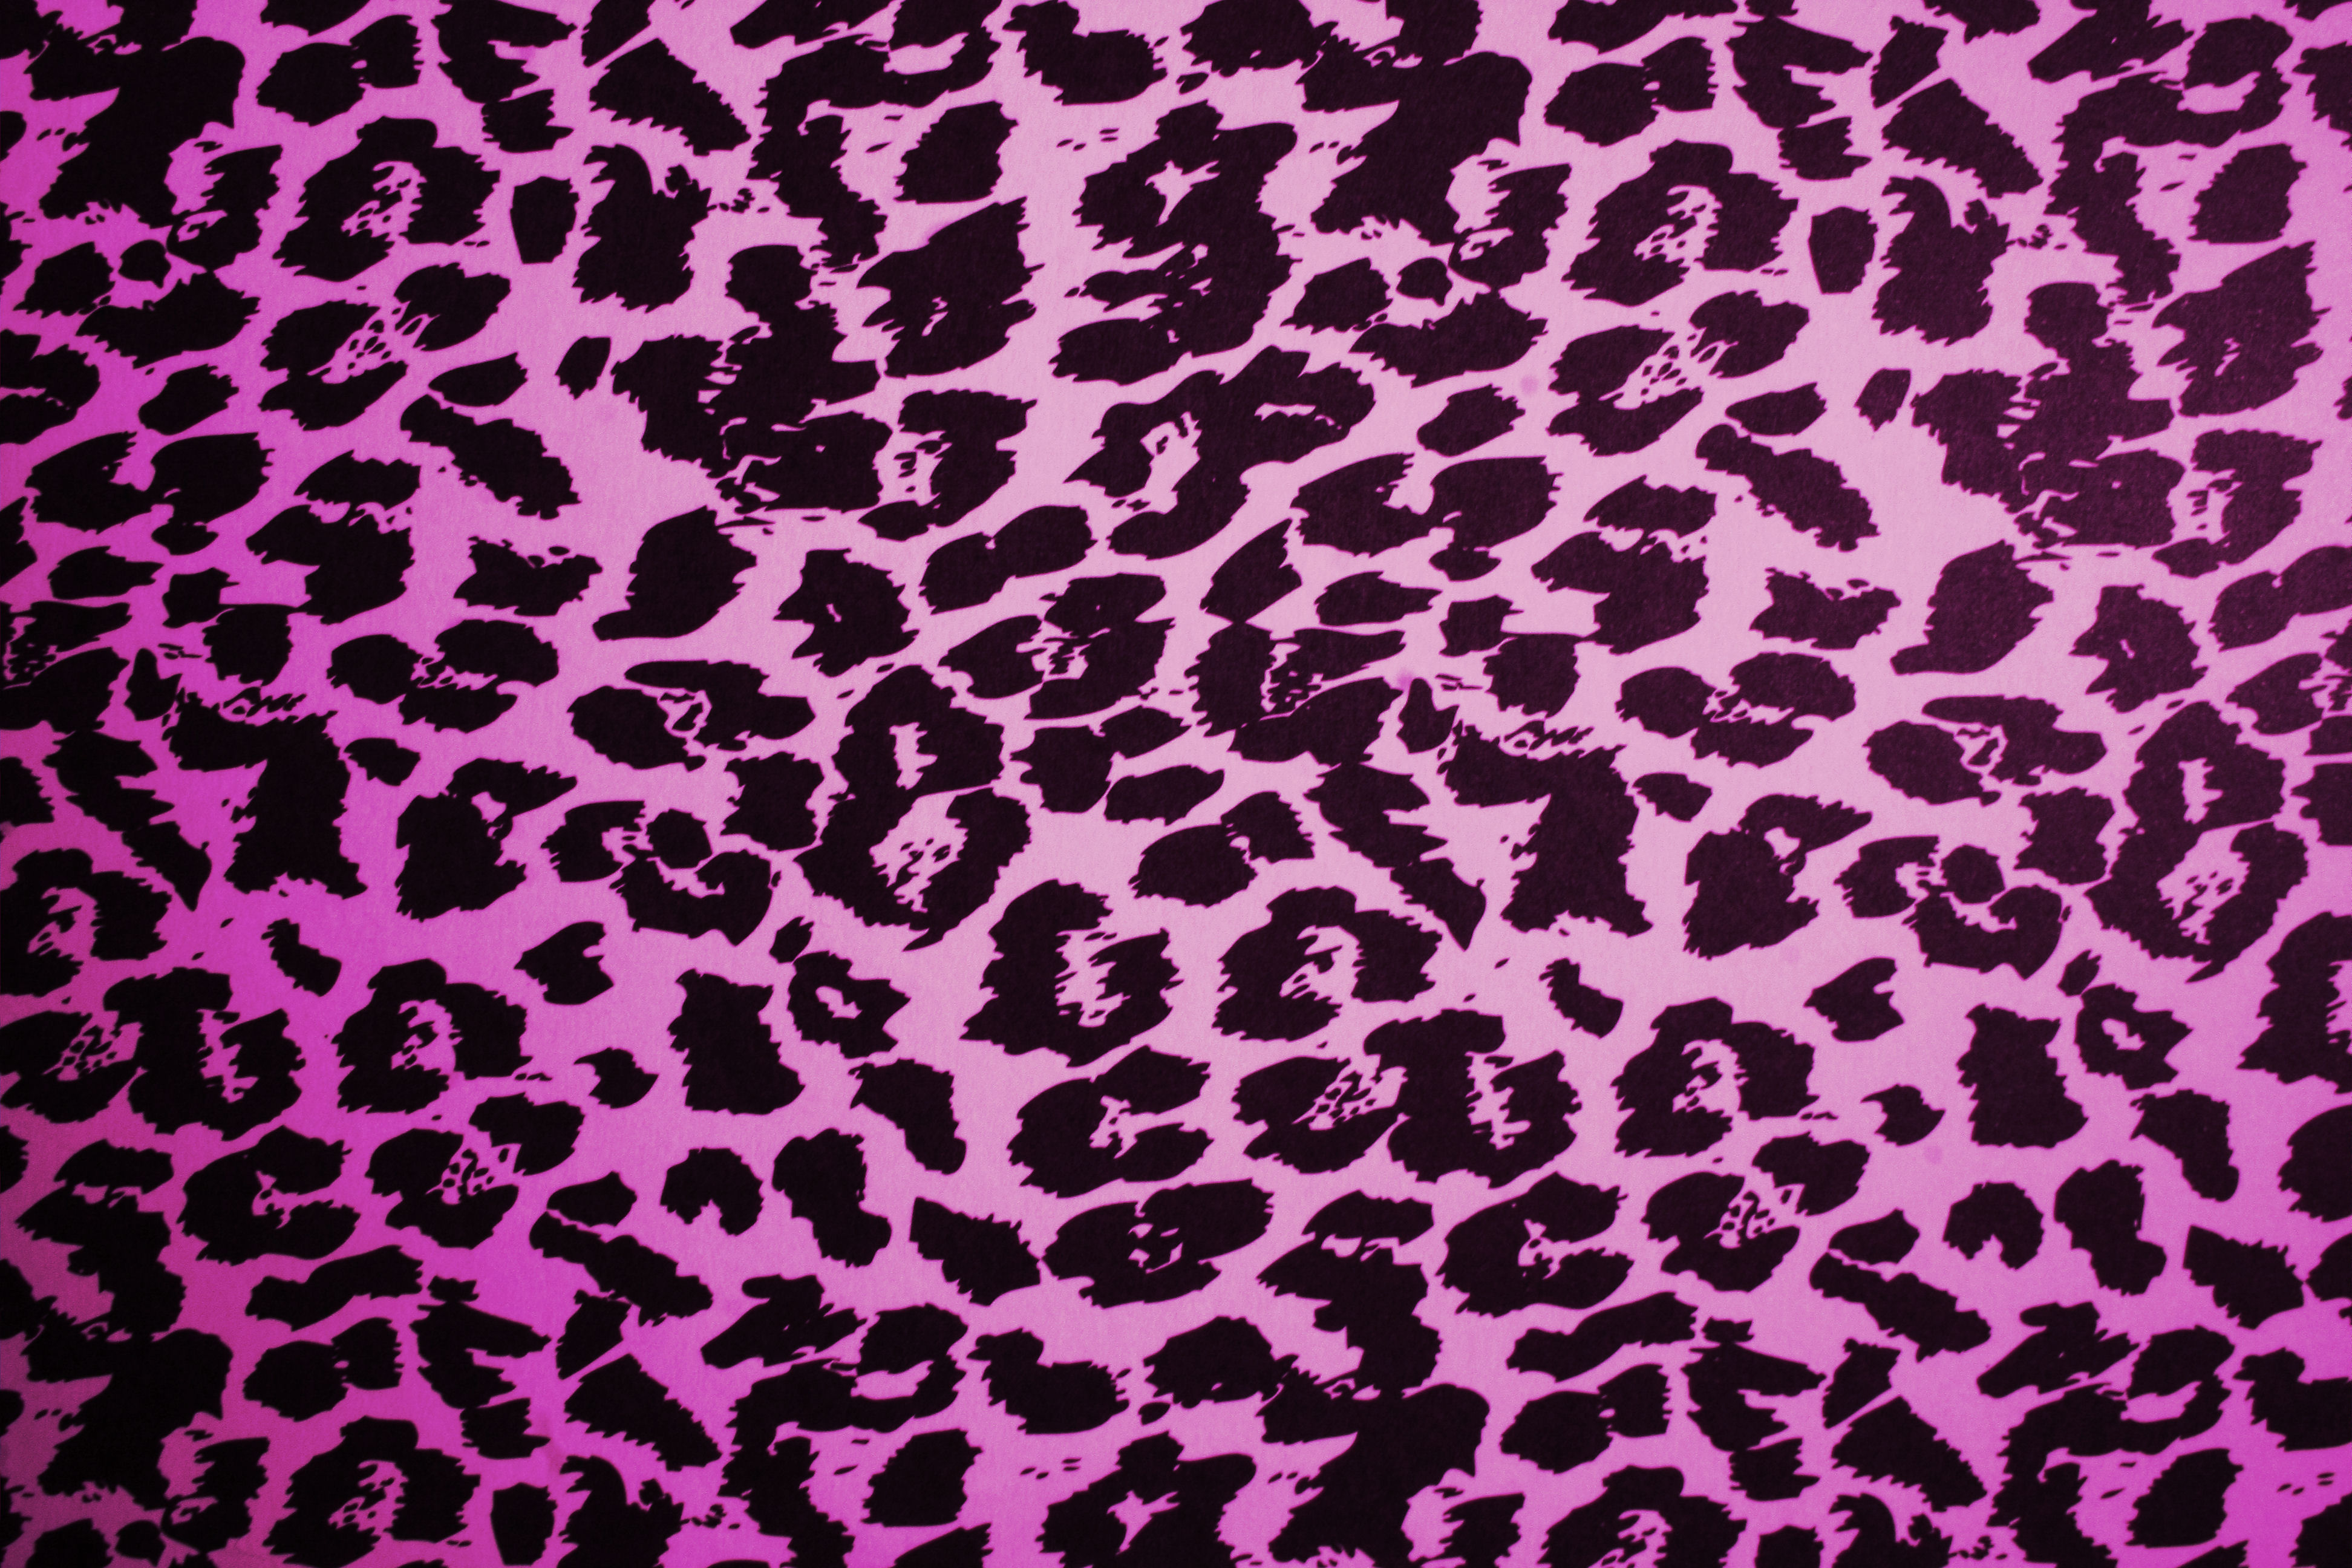 Animal Print Link Leopard Skin Image High Resolution in HD Wallpapers 3888x2592